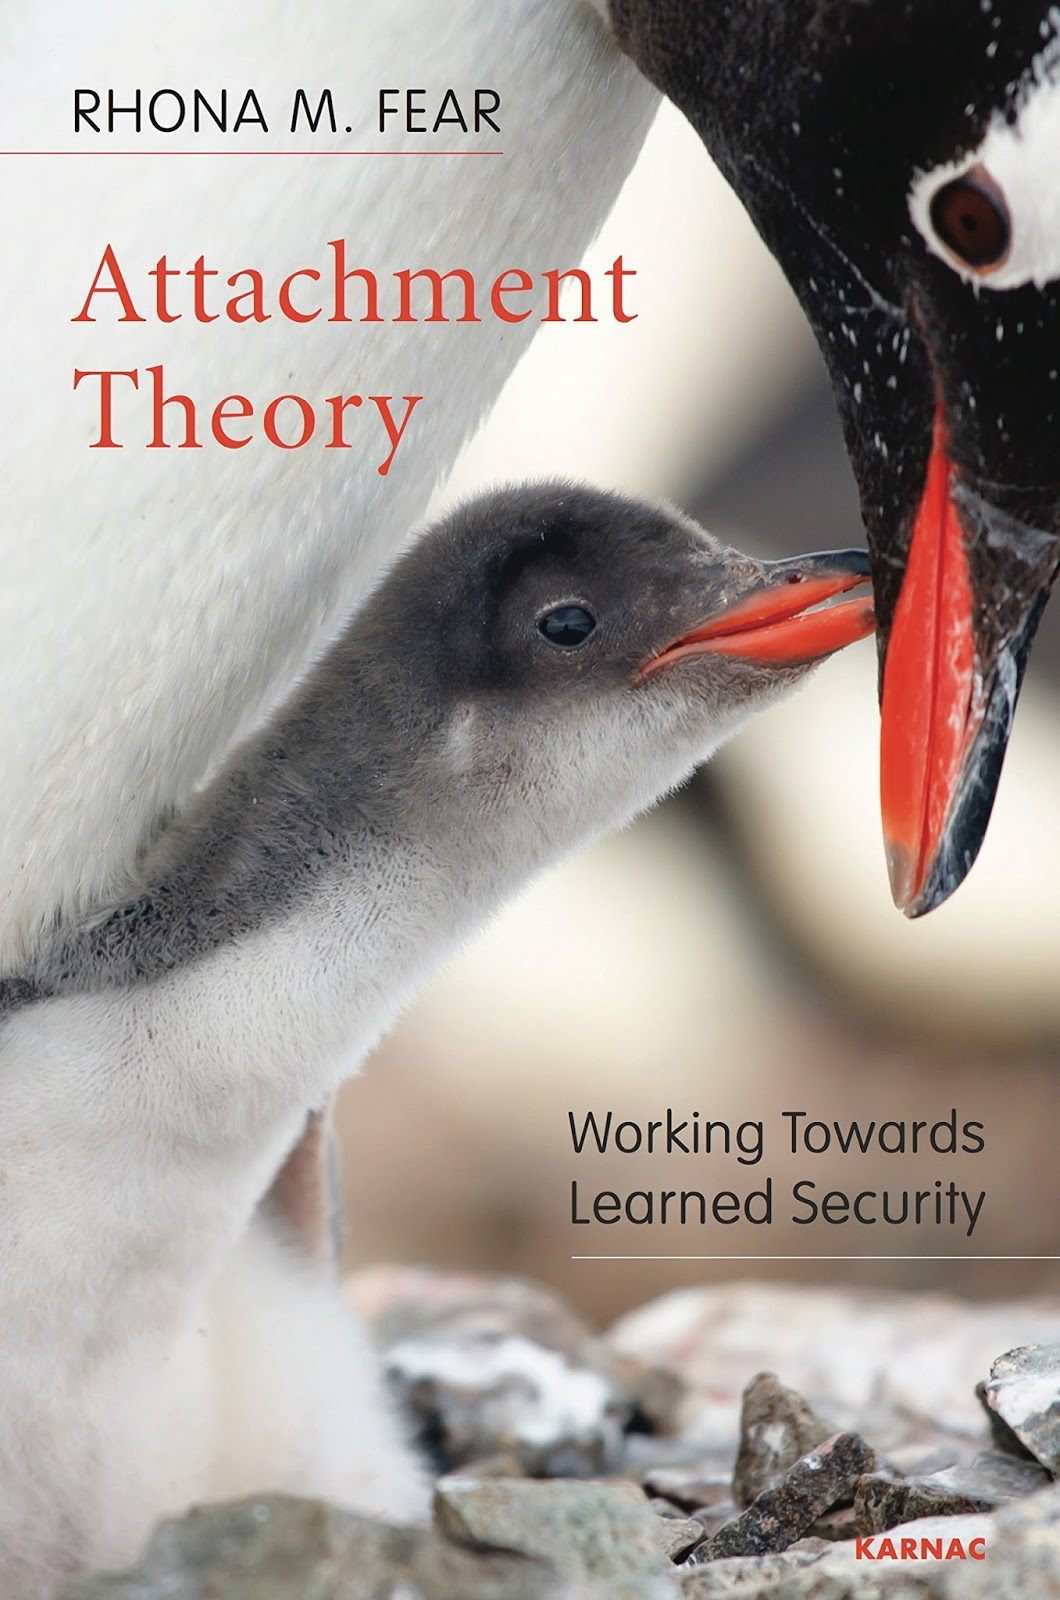 attachment theory essay alan turing essay two of alan turings code  freud quotes psychoanalytic theory books published in this book covers the groundbreaking concepts in attachment theory